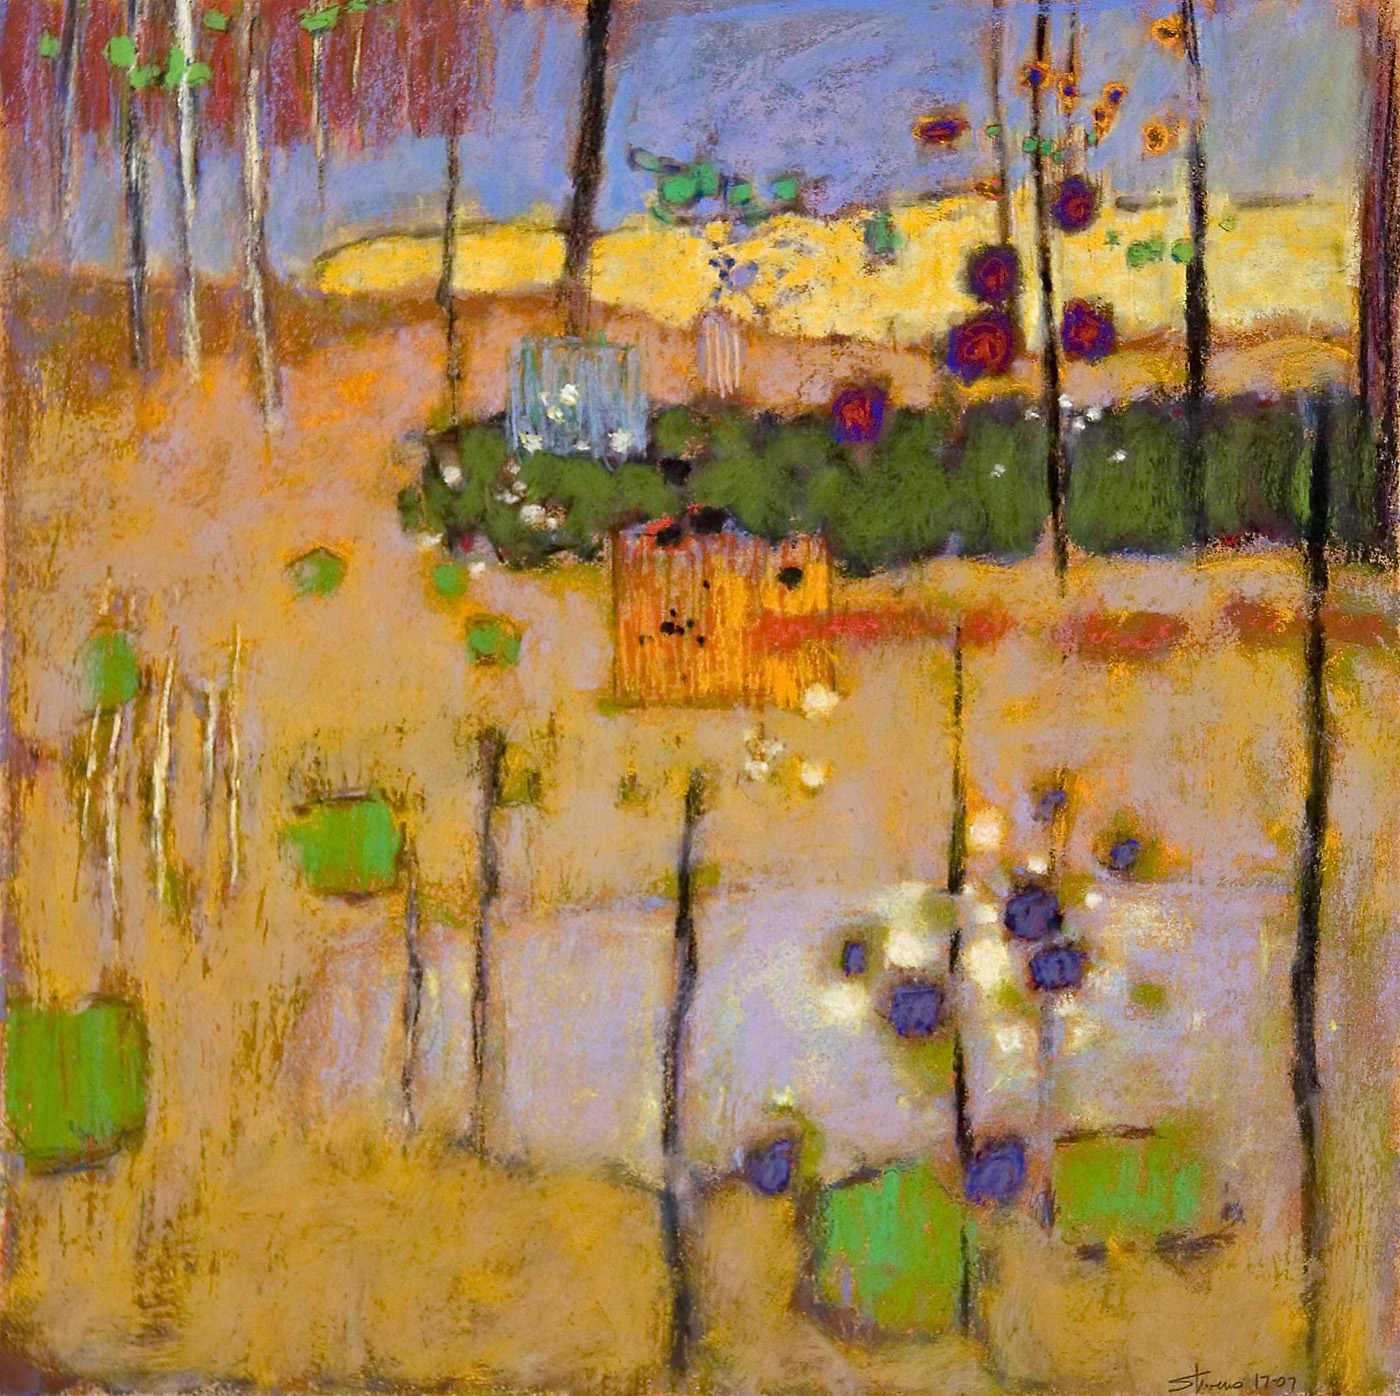 Softly Inhabited   | pastel on paper | 18 x 18"